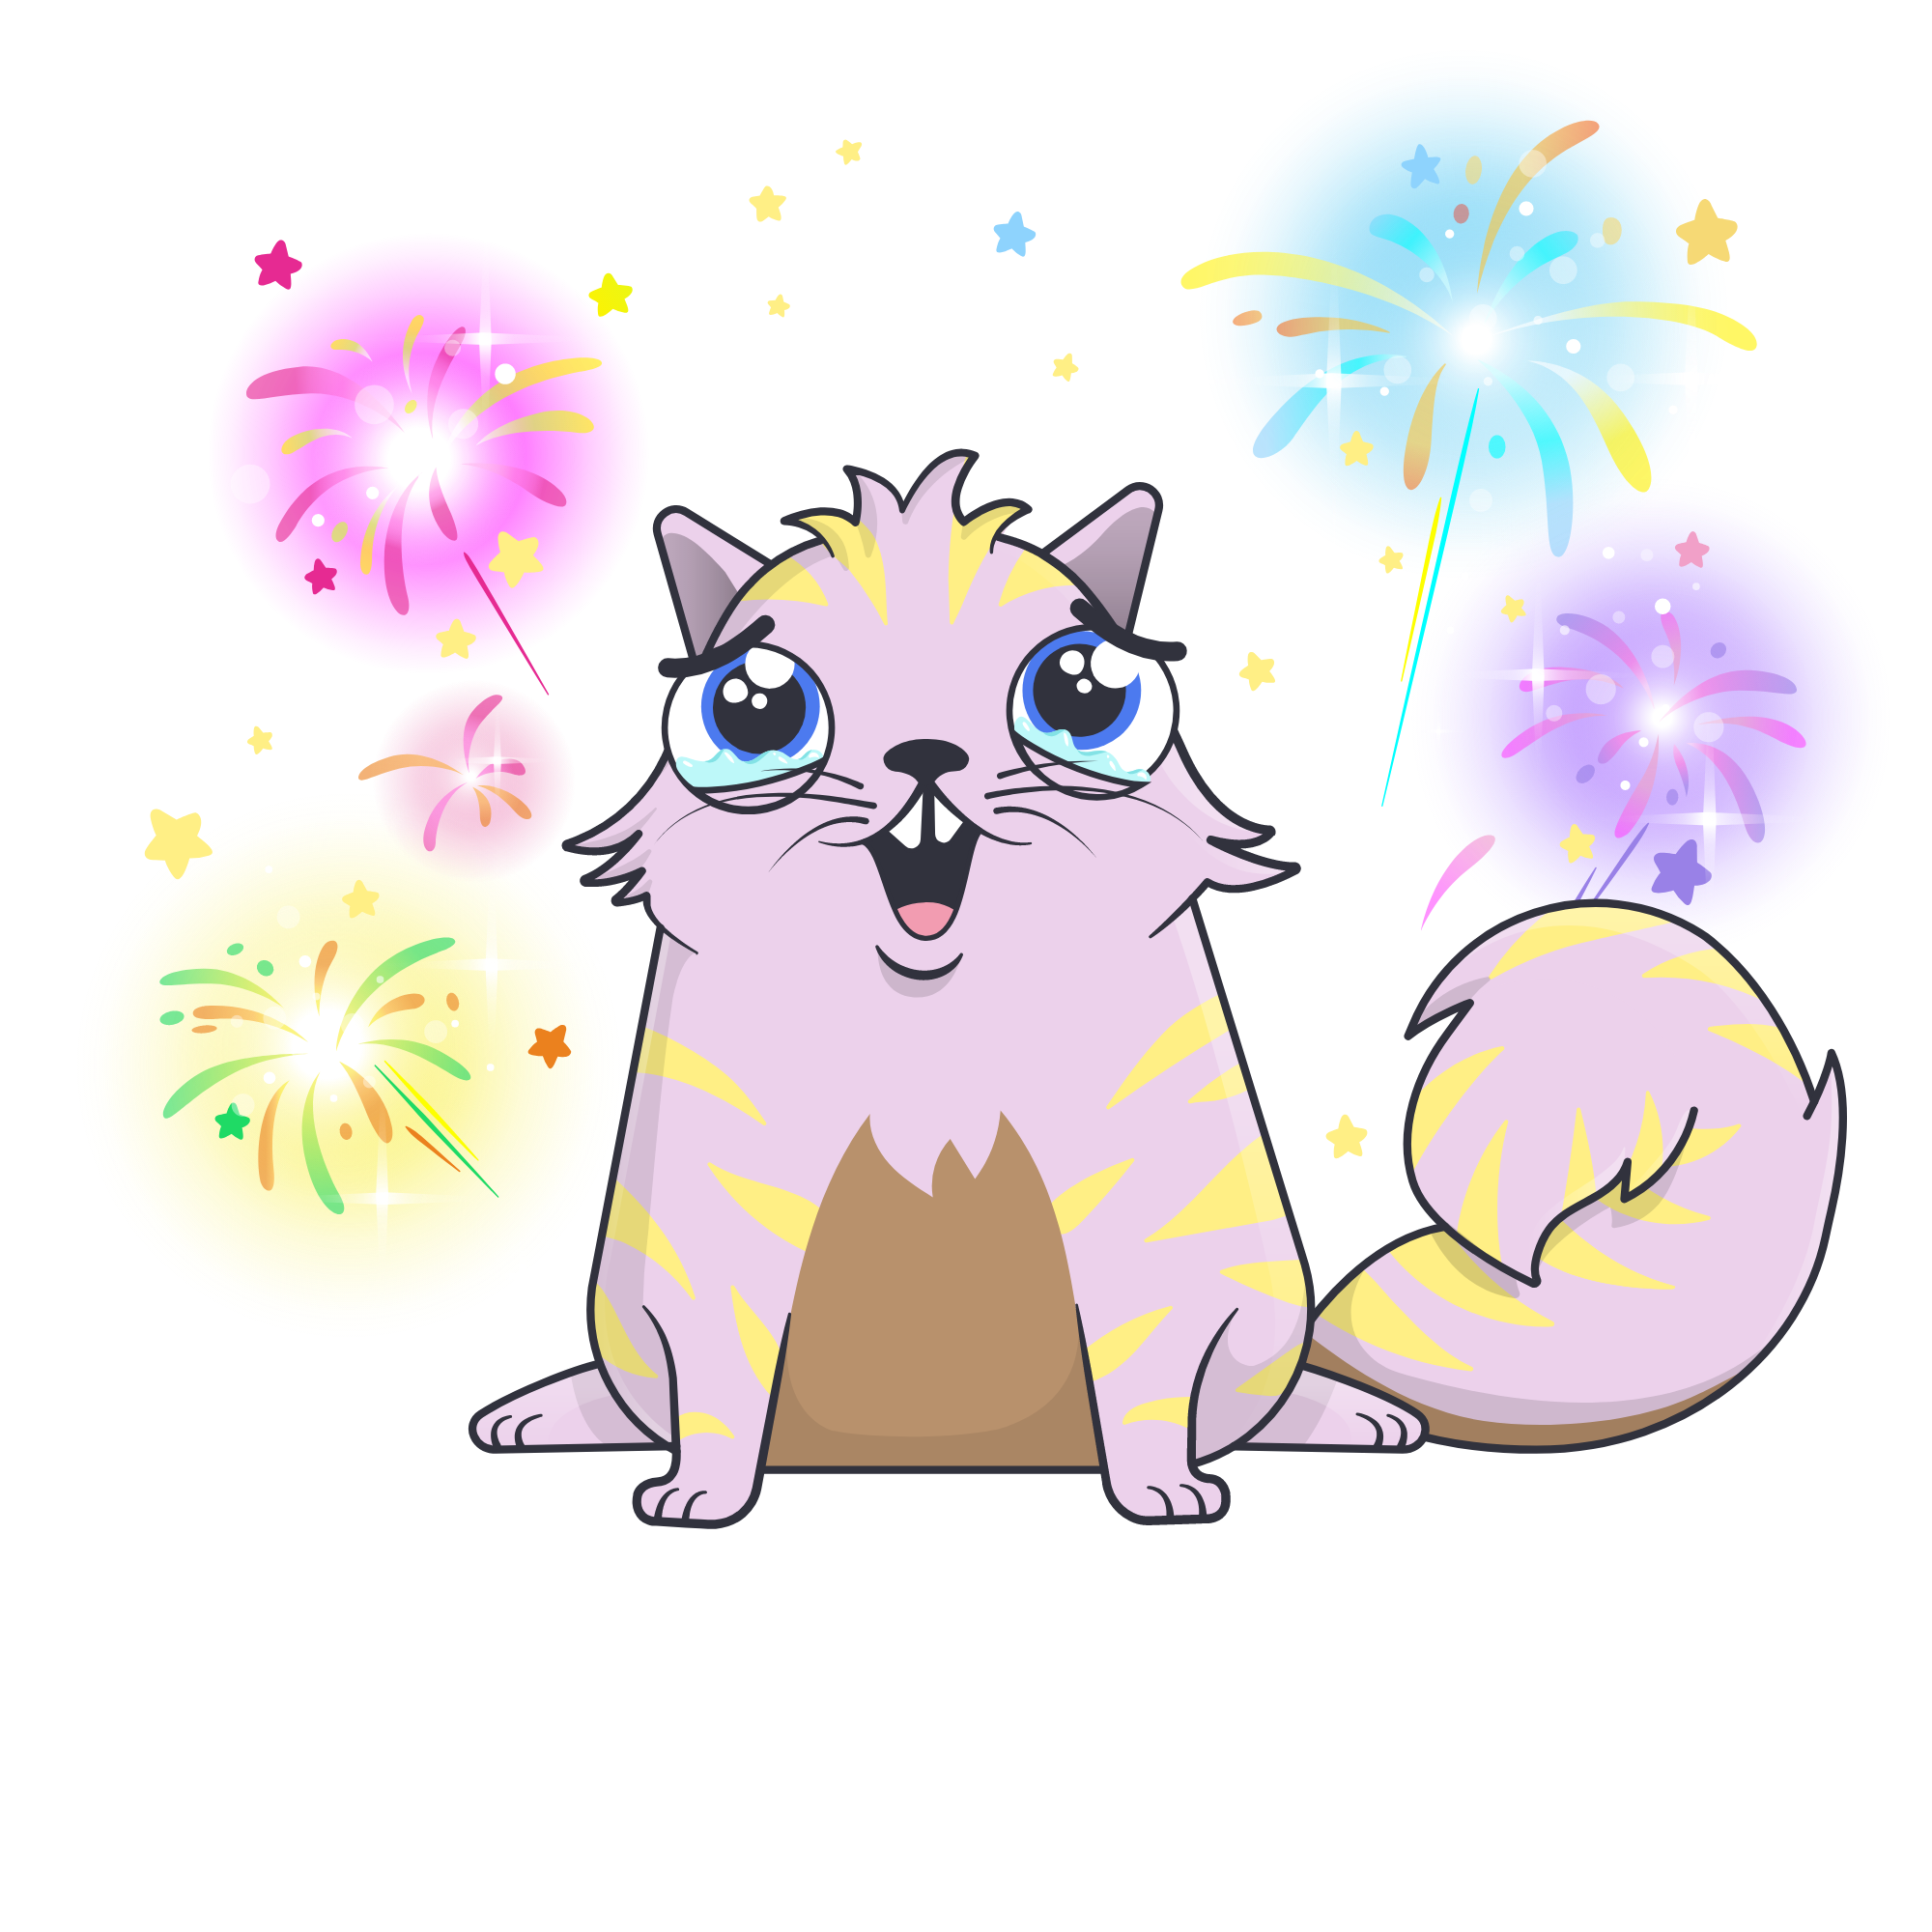 cryptokitty #1796441